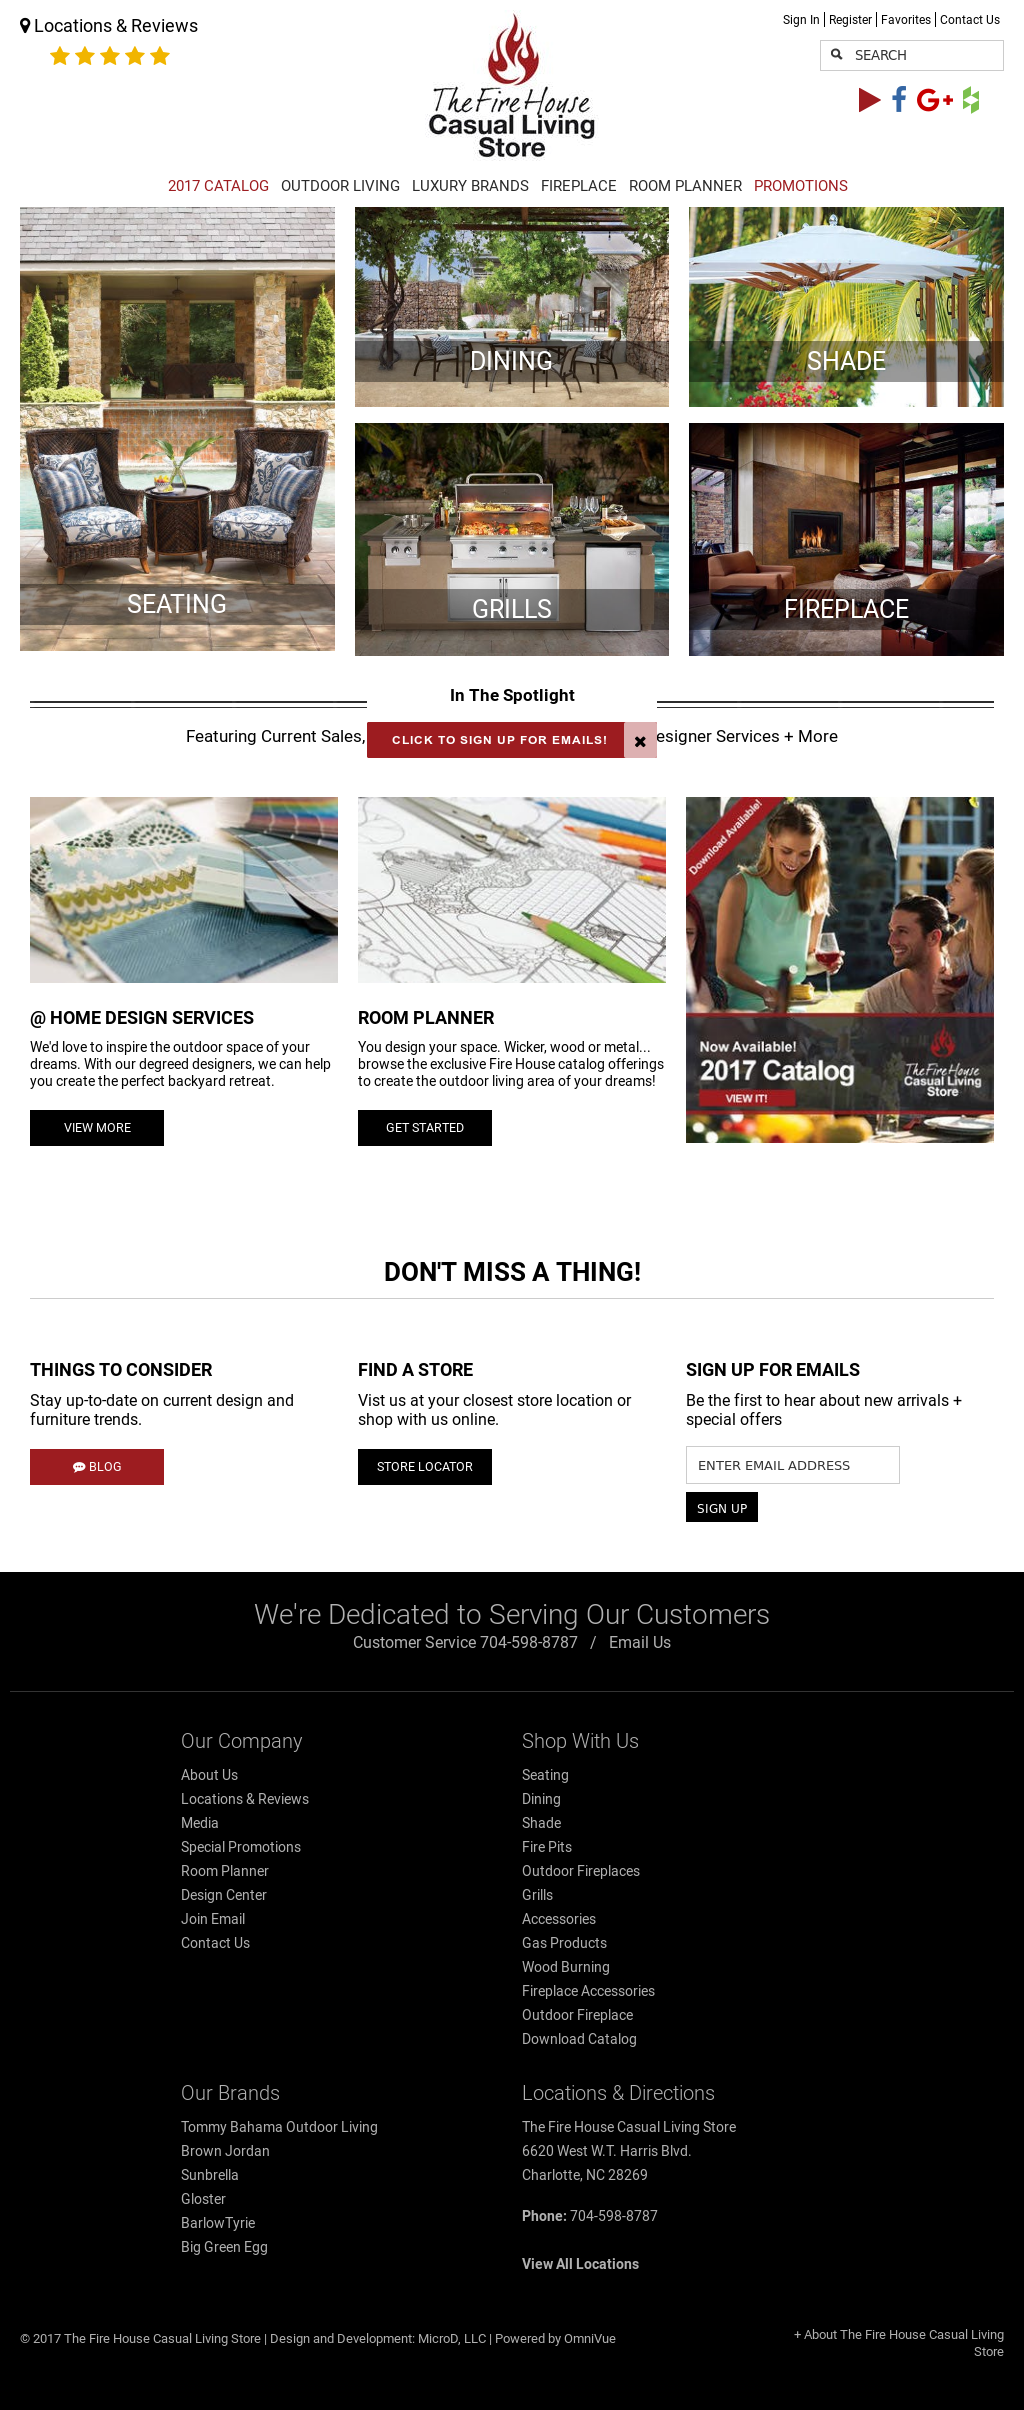 Ordinaire Firehouse Casual Living Store Website History